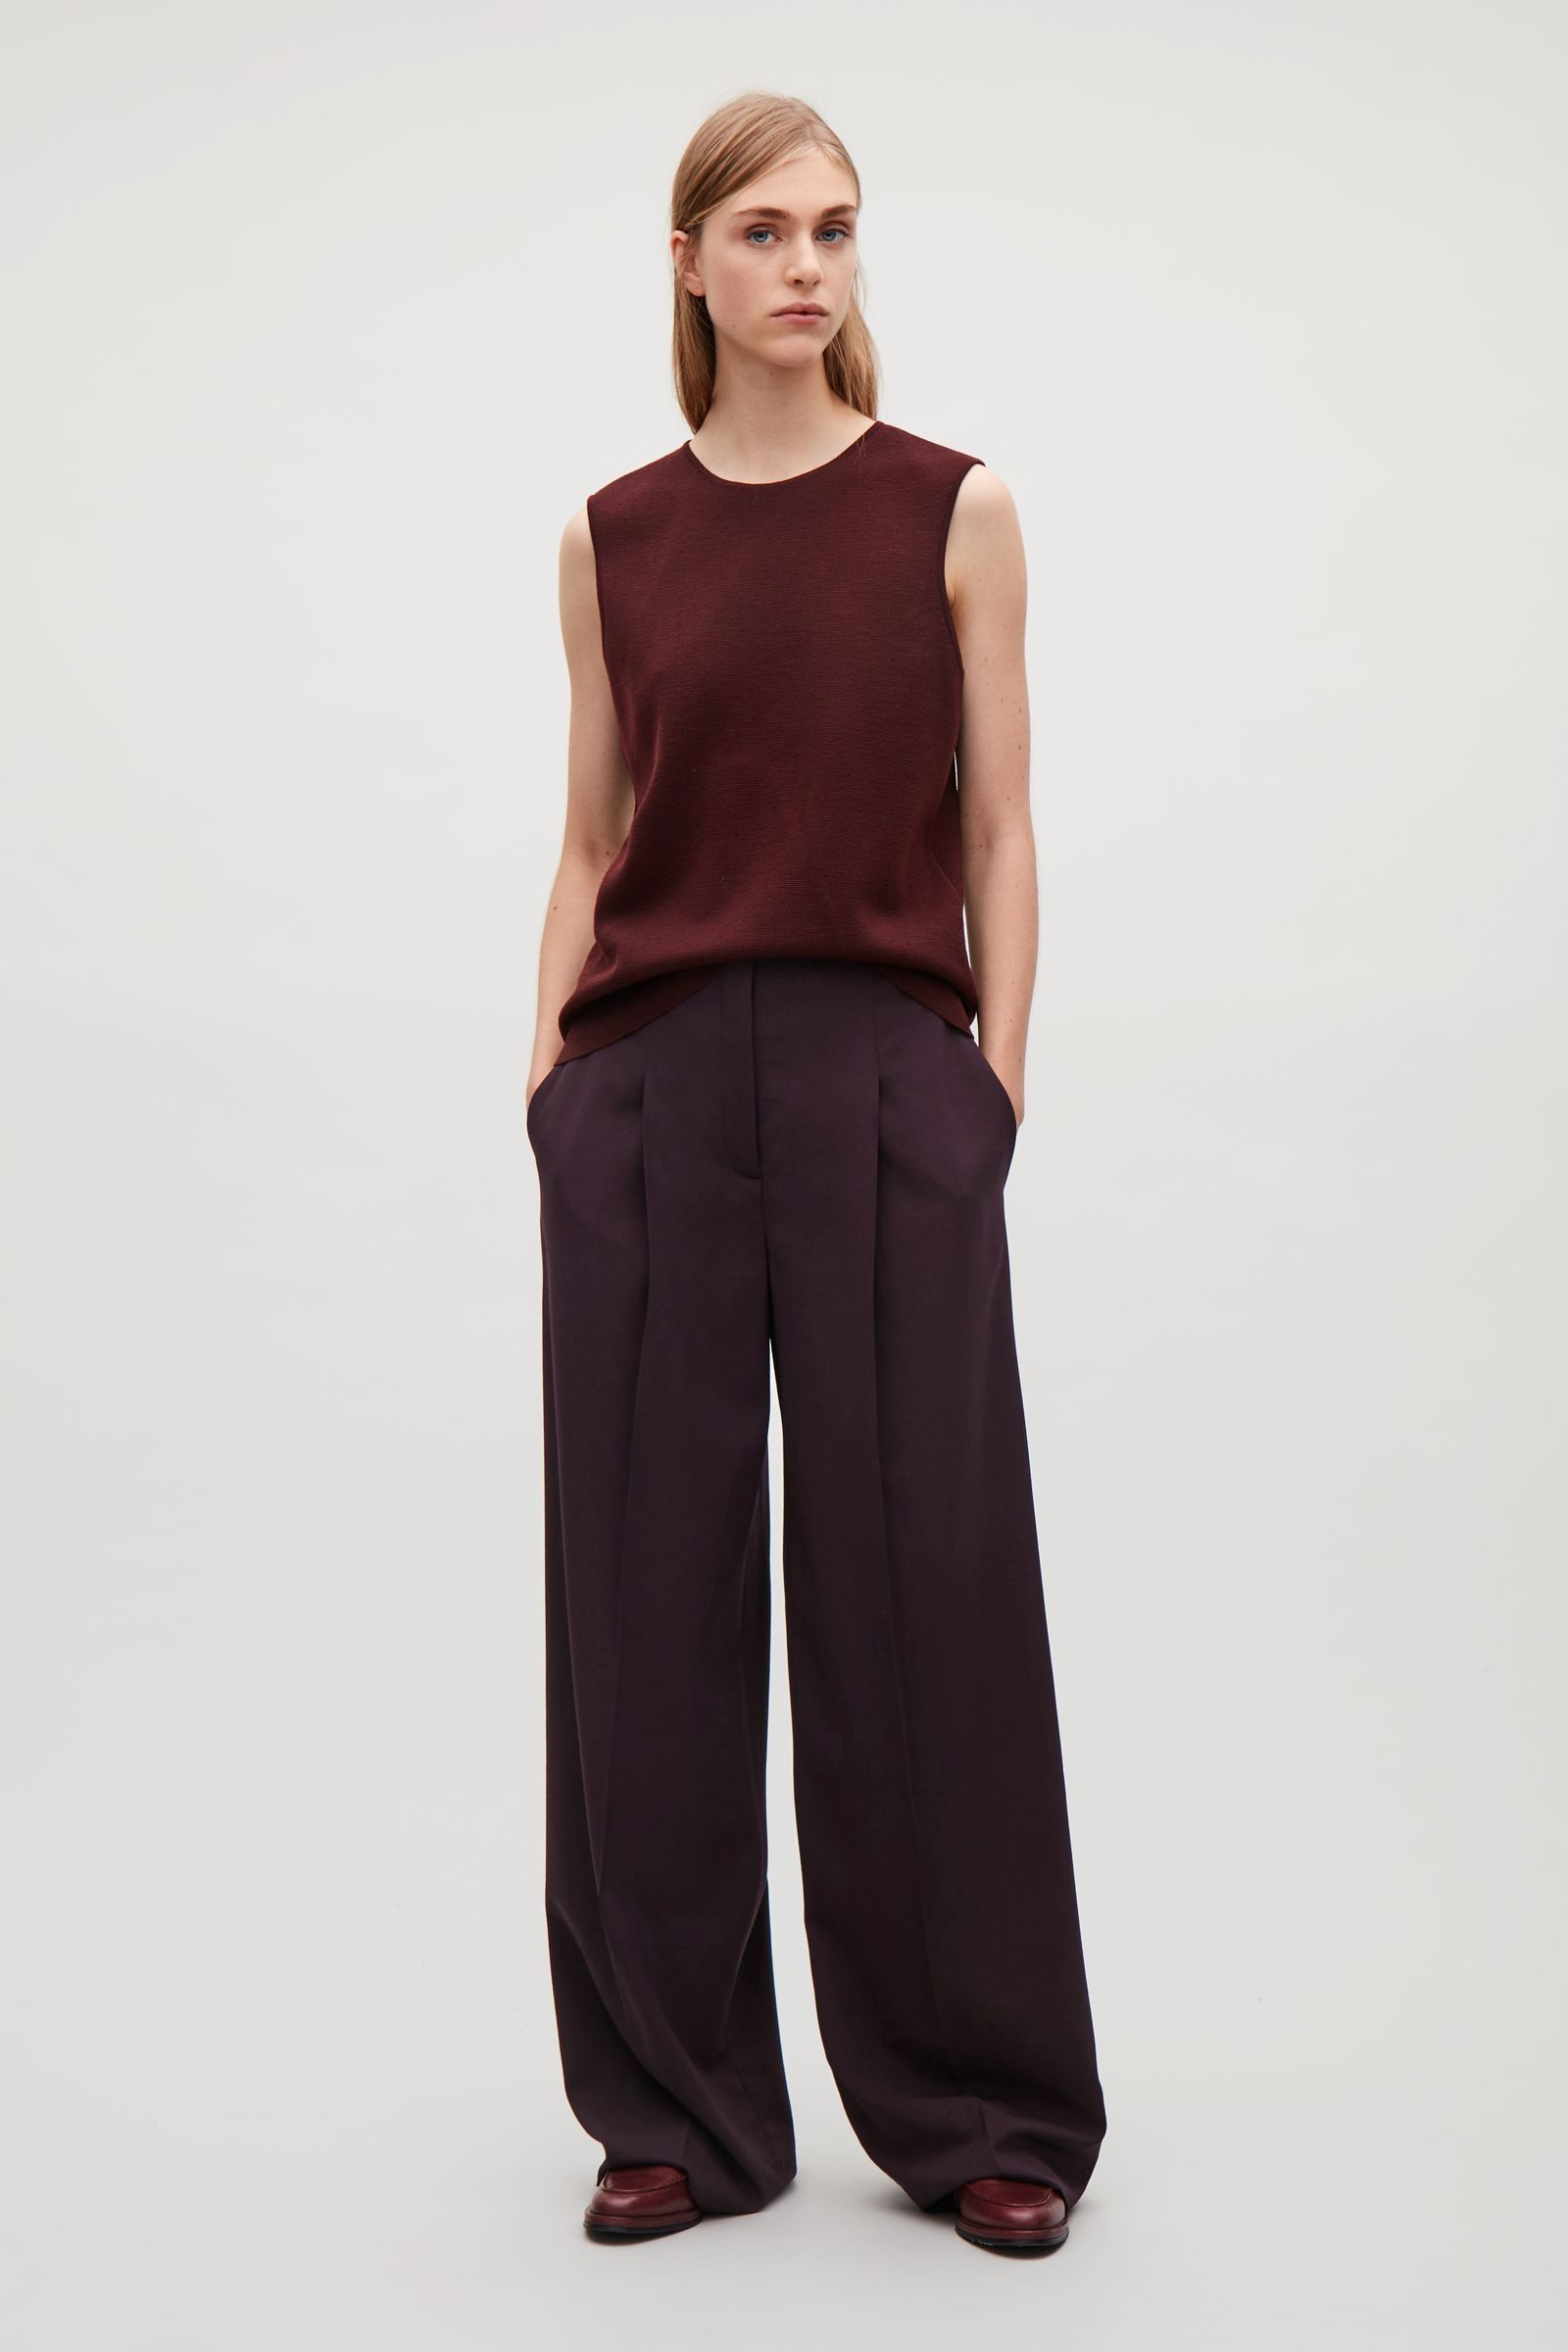 85e77604dba8 COS Wide-leg trousers with press folds in Plum   style :: clothes ...